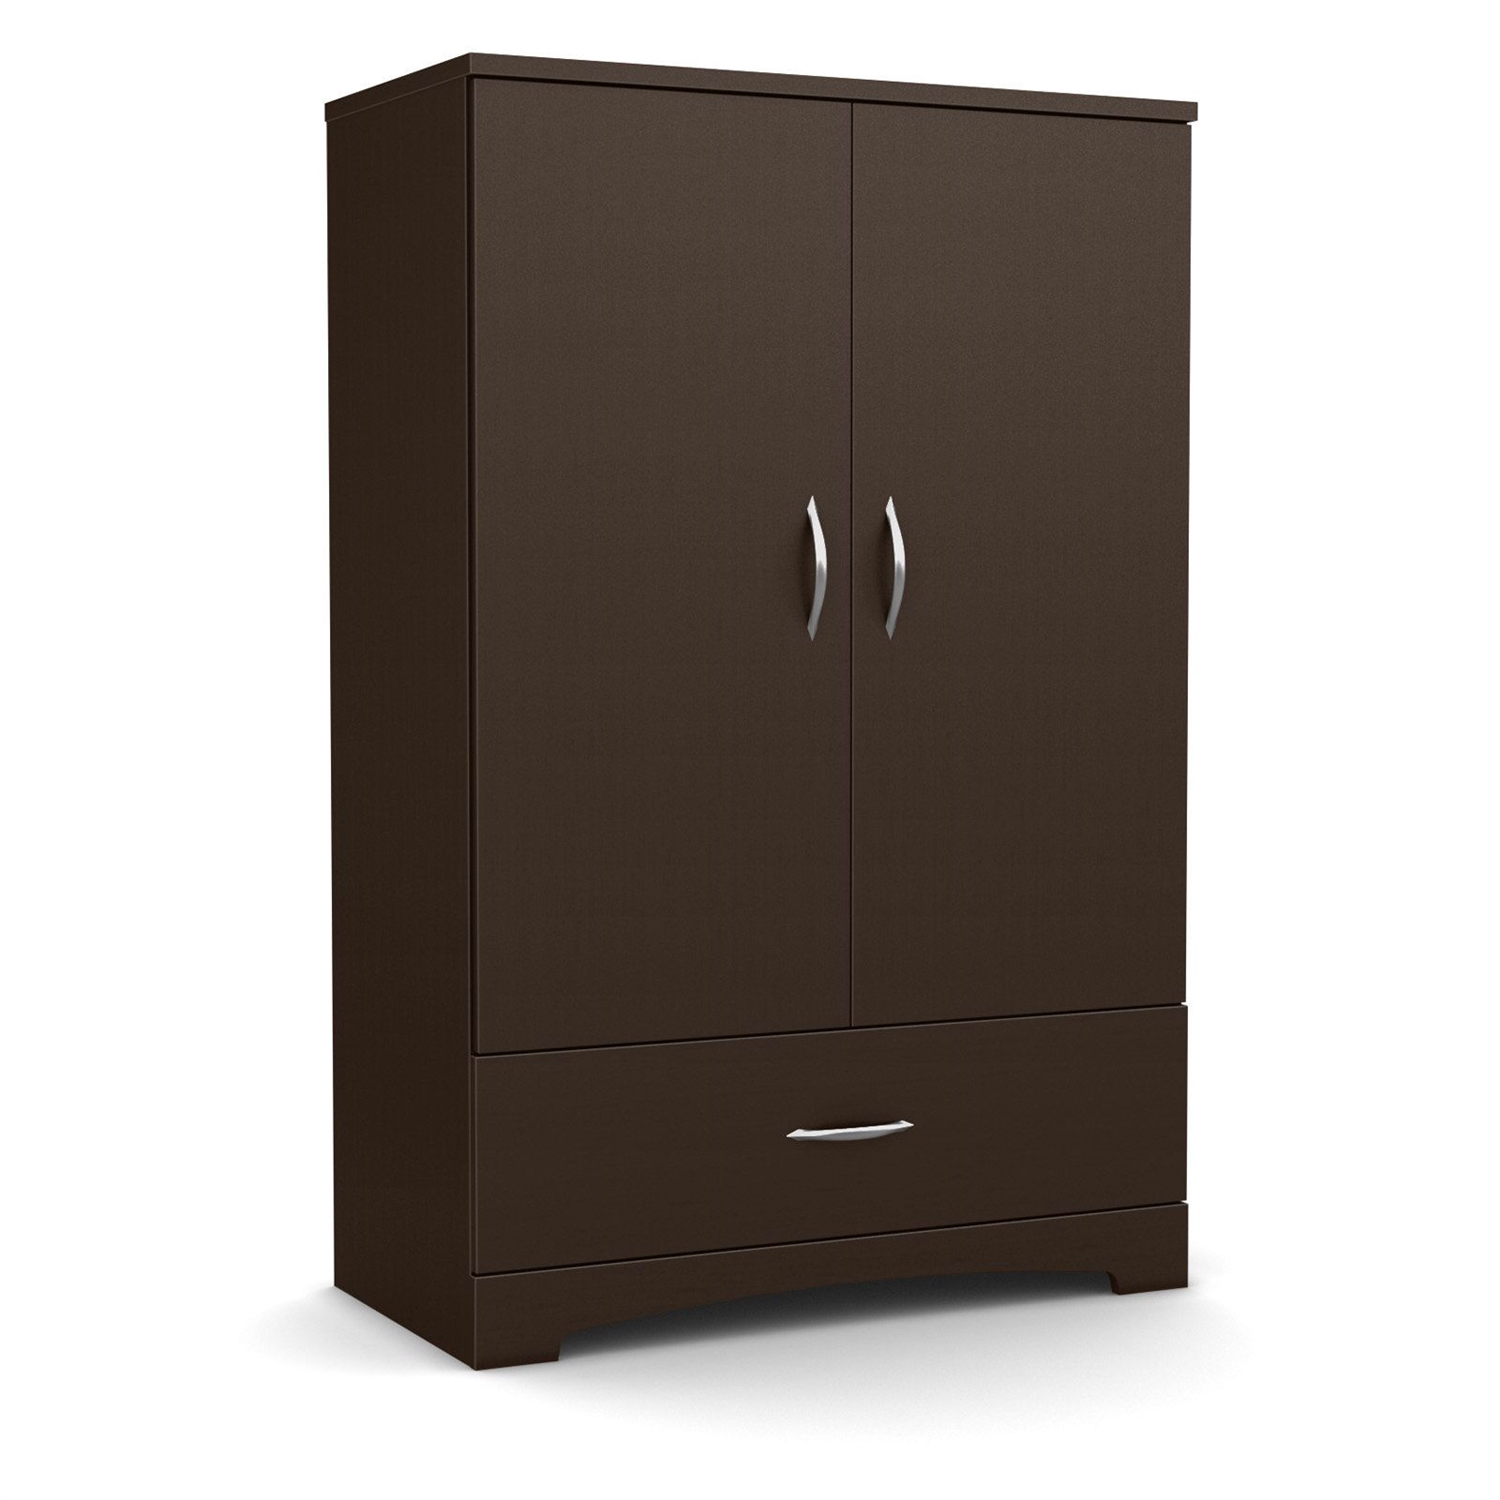 Attractive Contemporary 2 Door Armoire Wardrobe Cabinet With Bottom Drawer In  Chocolate Brown